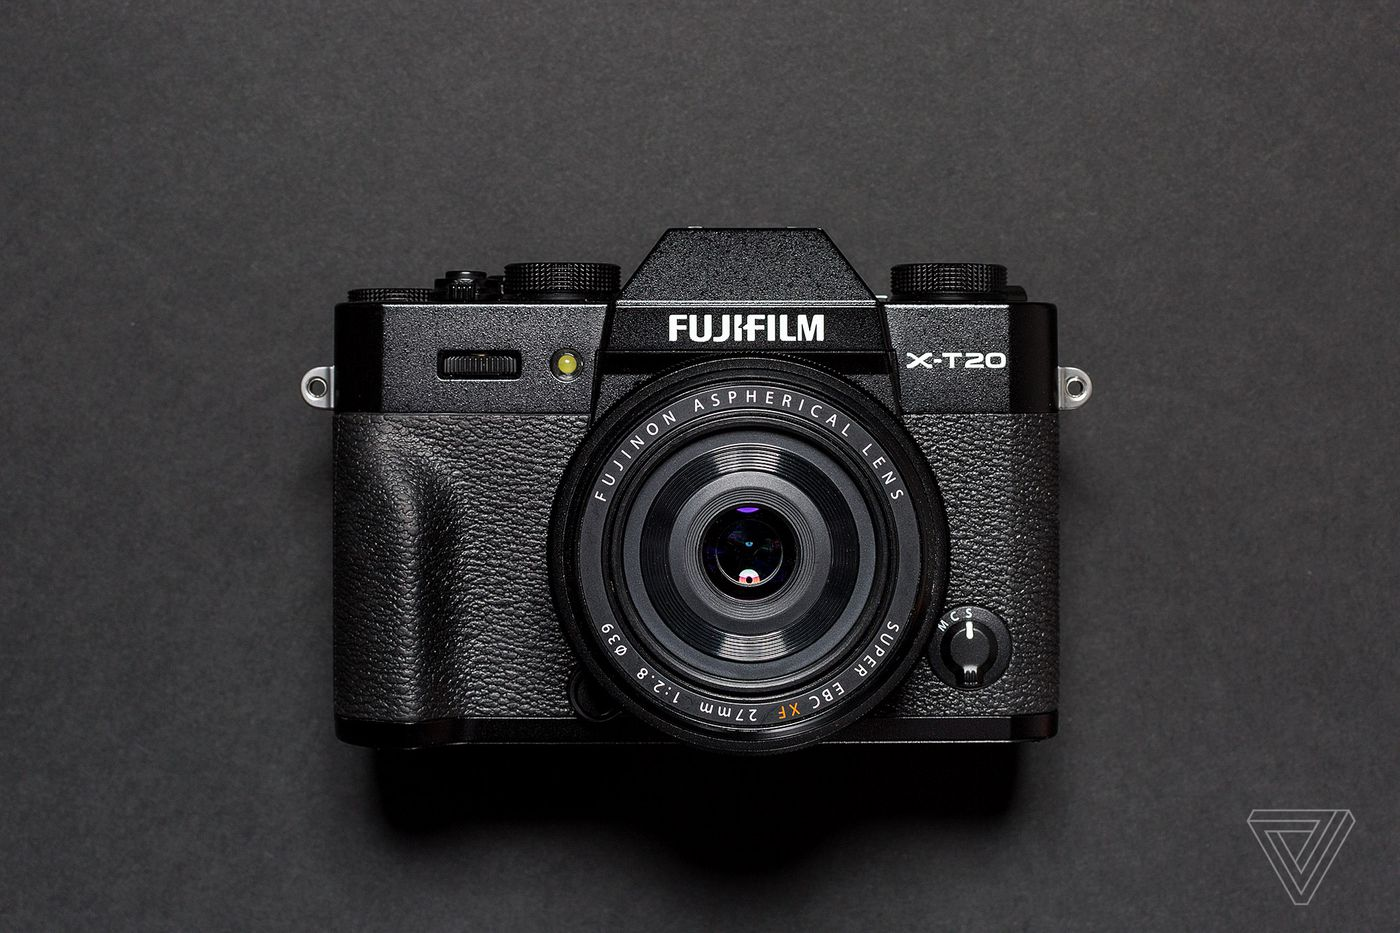 Fujifilm X-T20 review: love, rekindled - The Verge